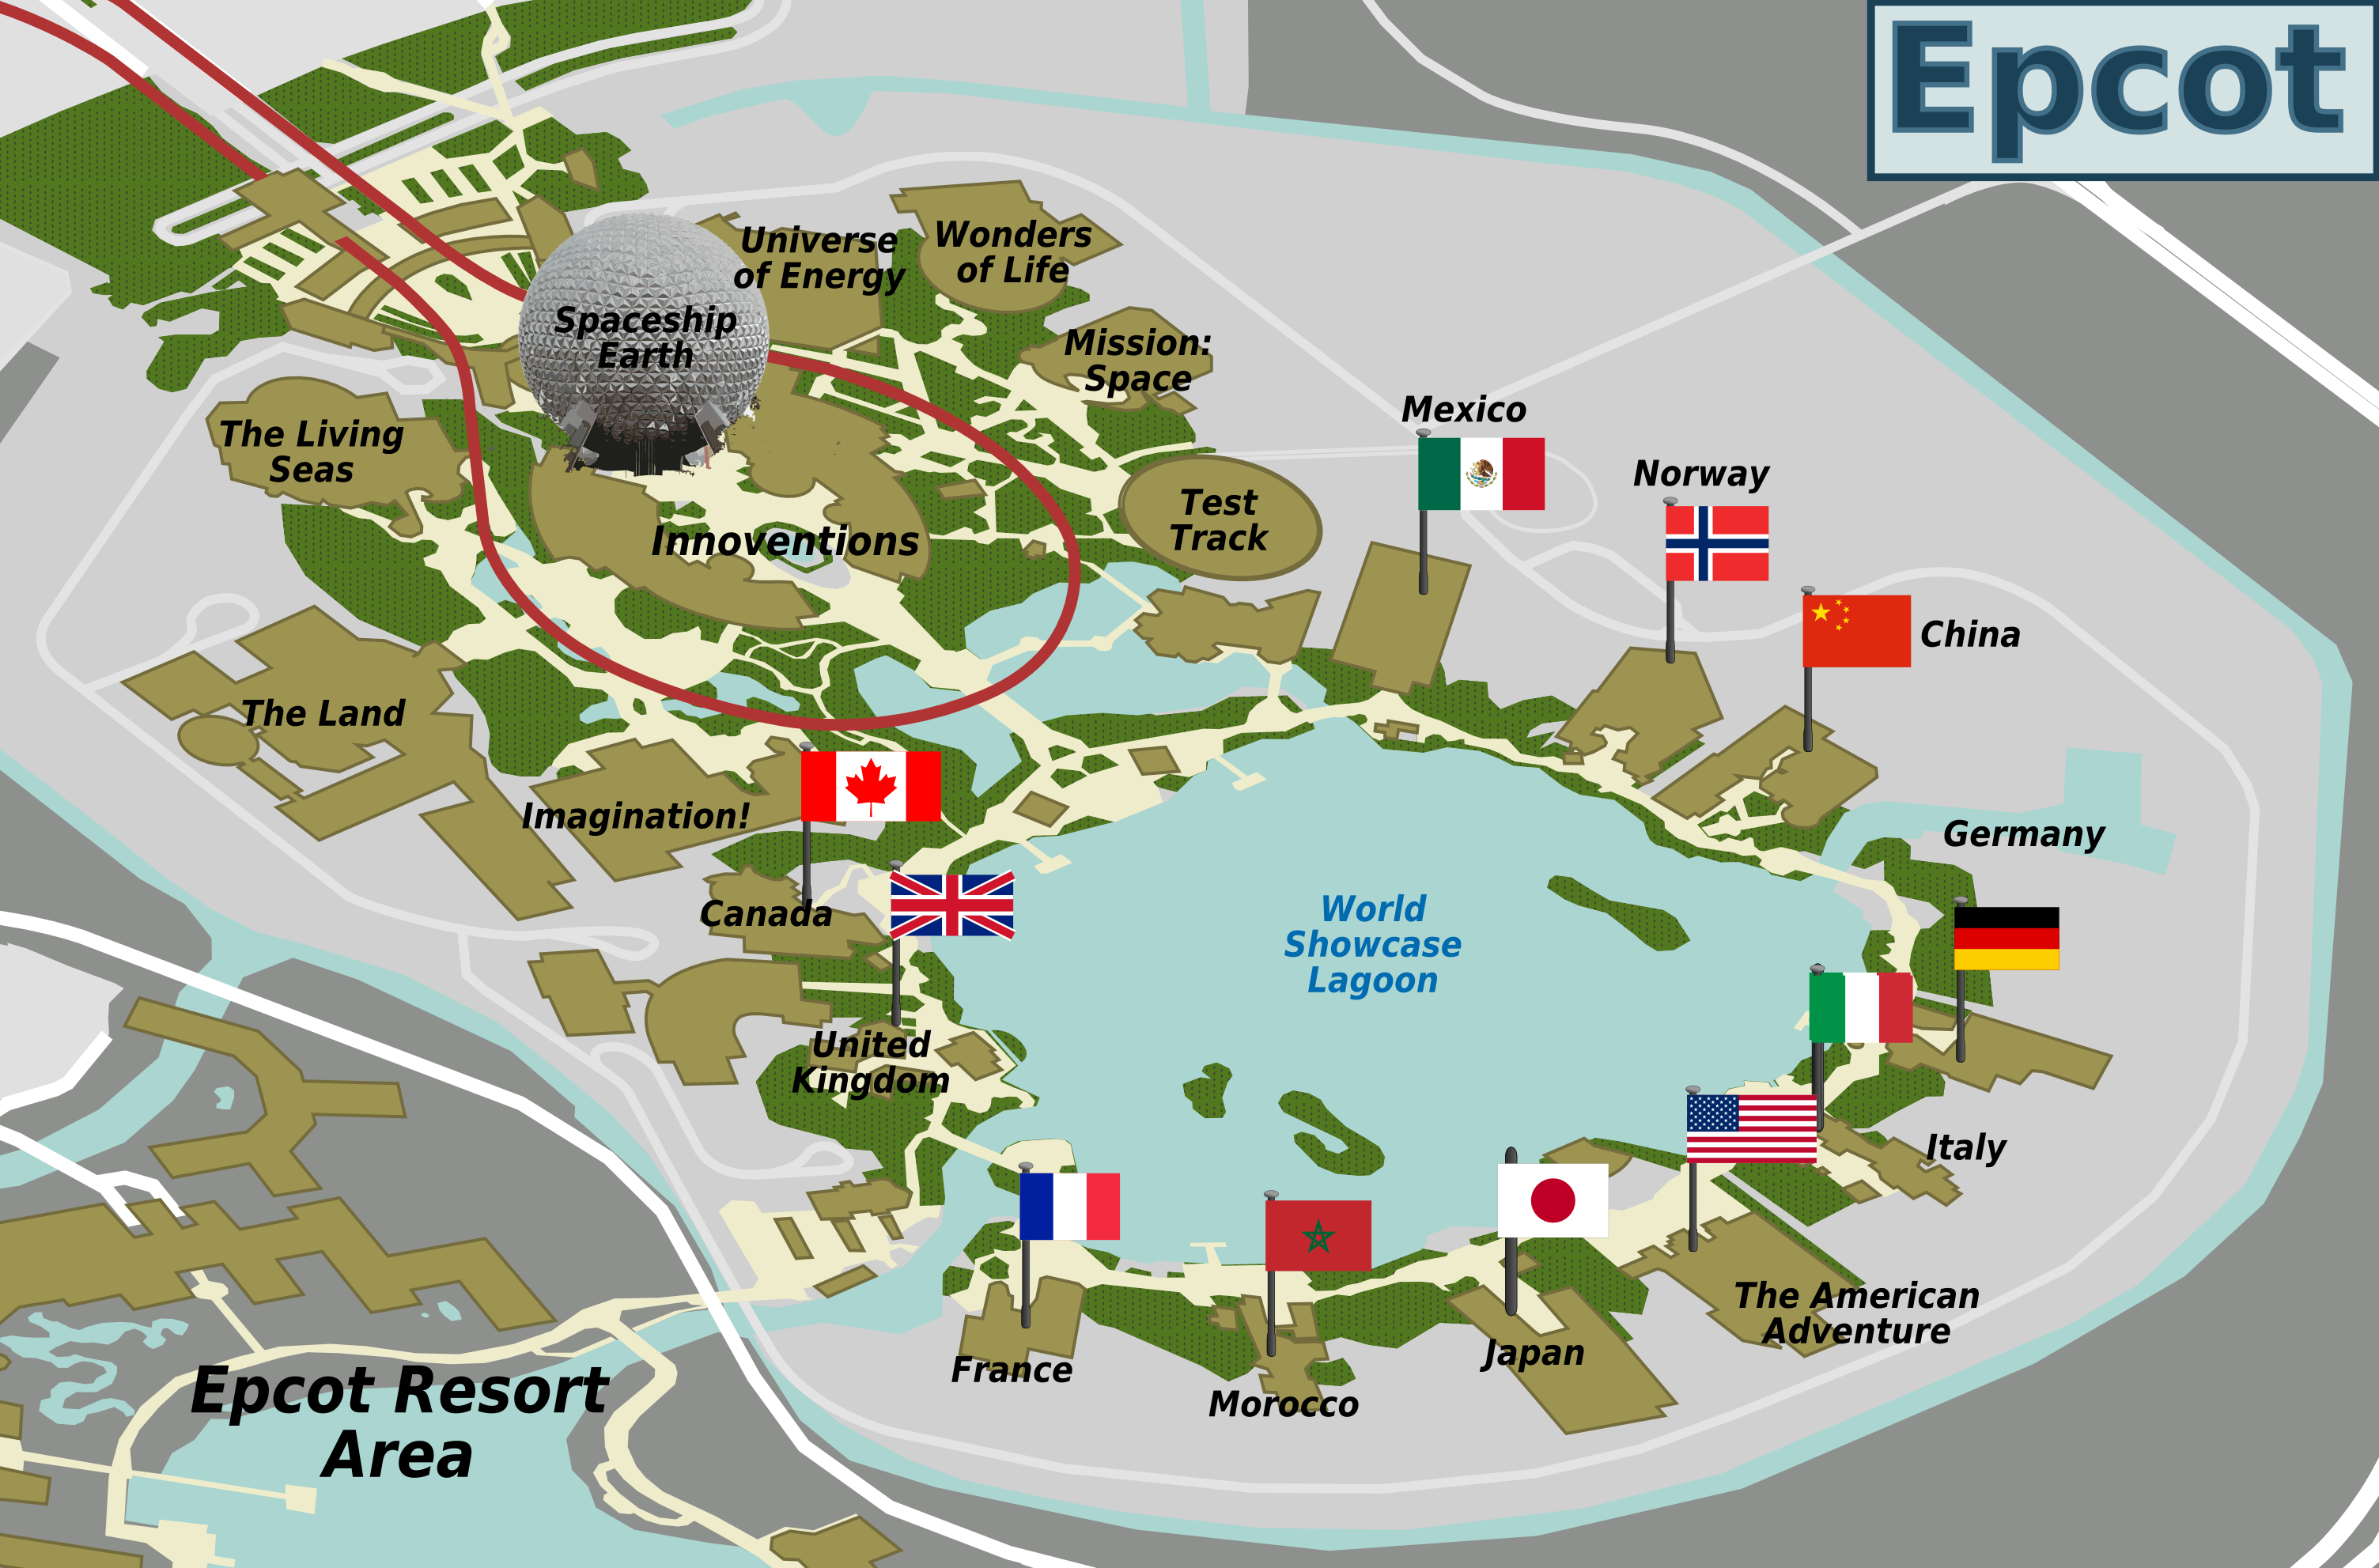 File:Epcot map.png - Wikimedia Commons